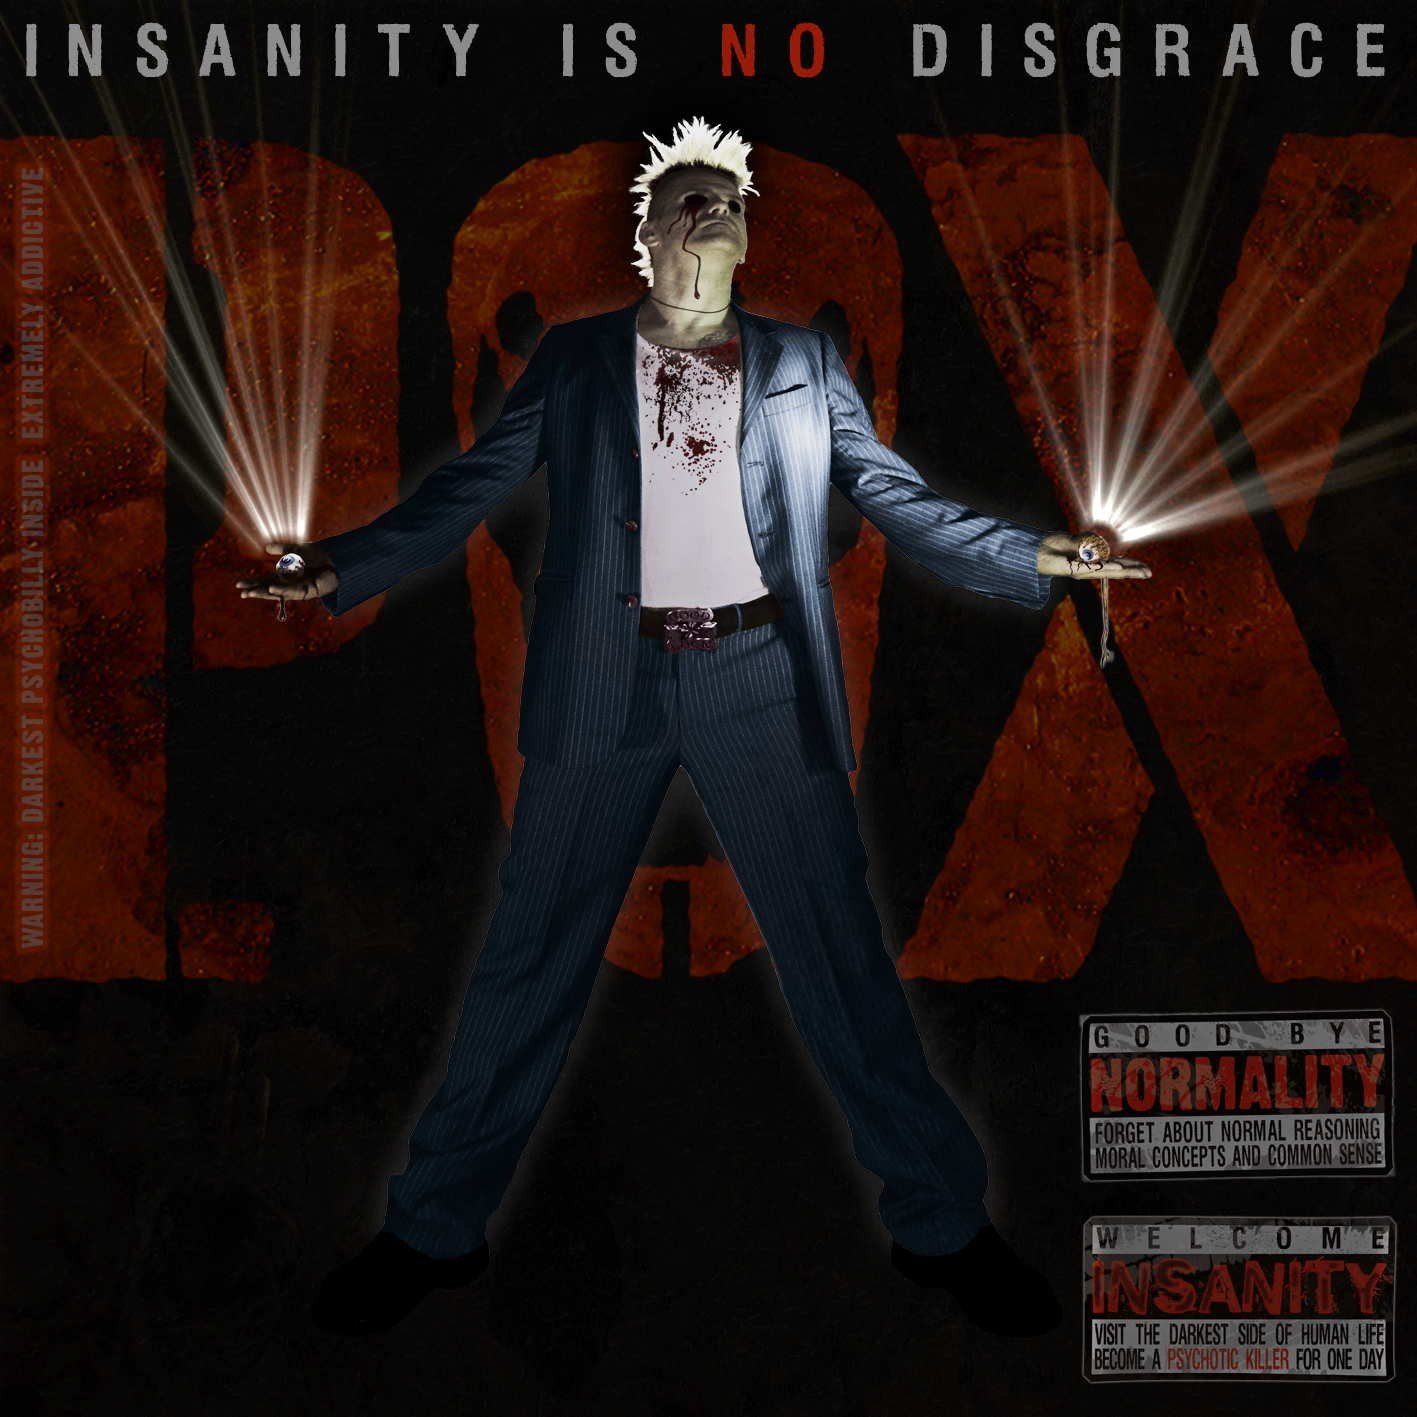 P.O.X. - Insanity is no disgrace